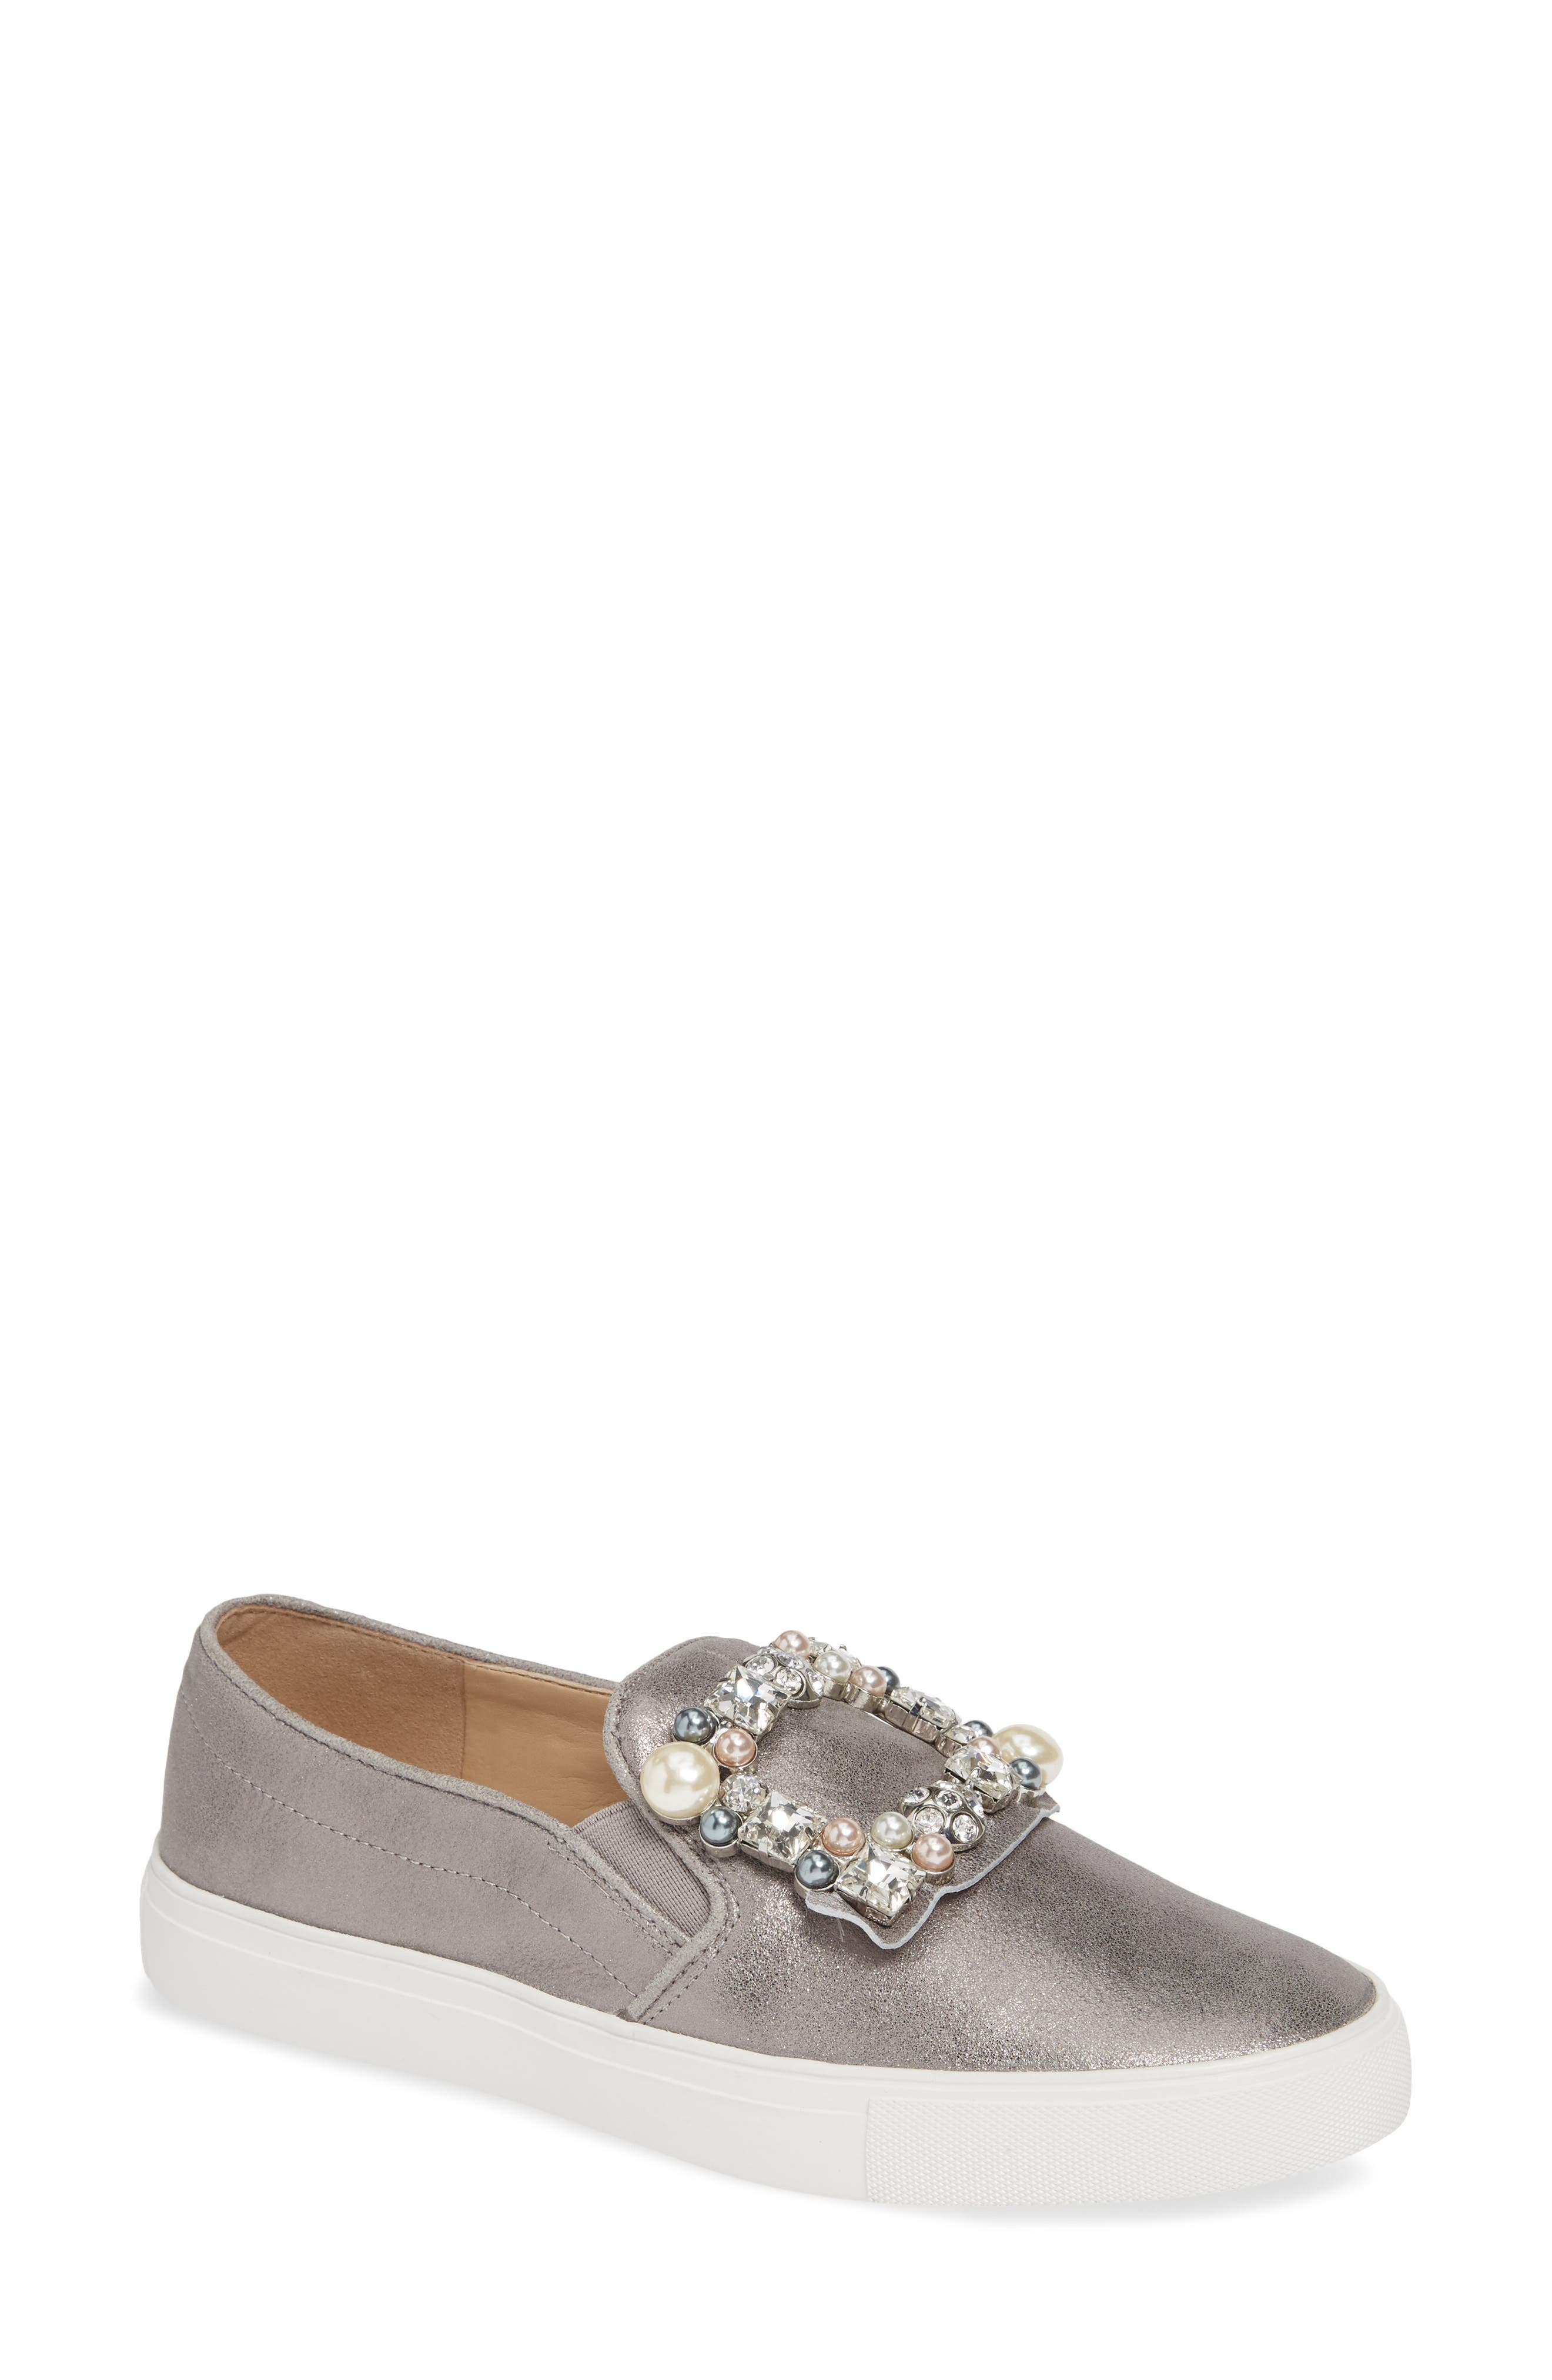 Evelyn Imitation Pearl Embellished Sneaker in Pewter